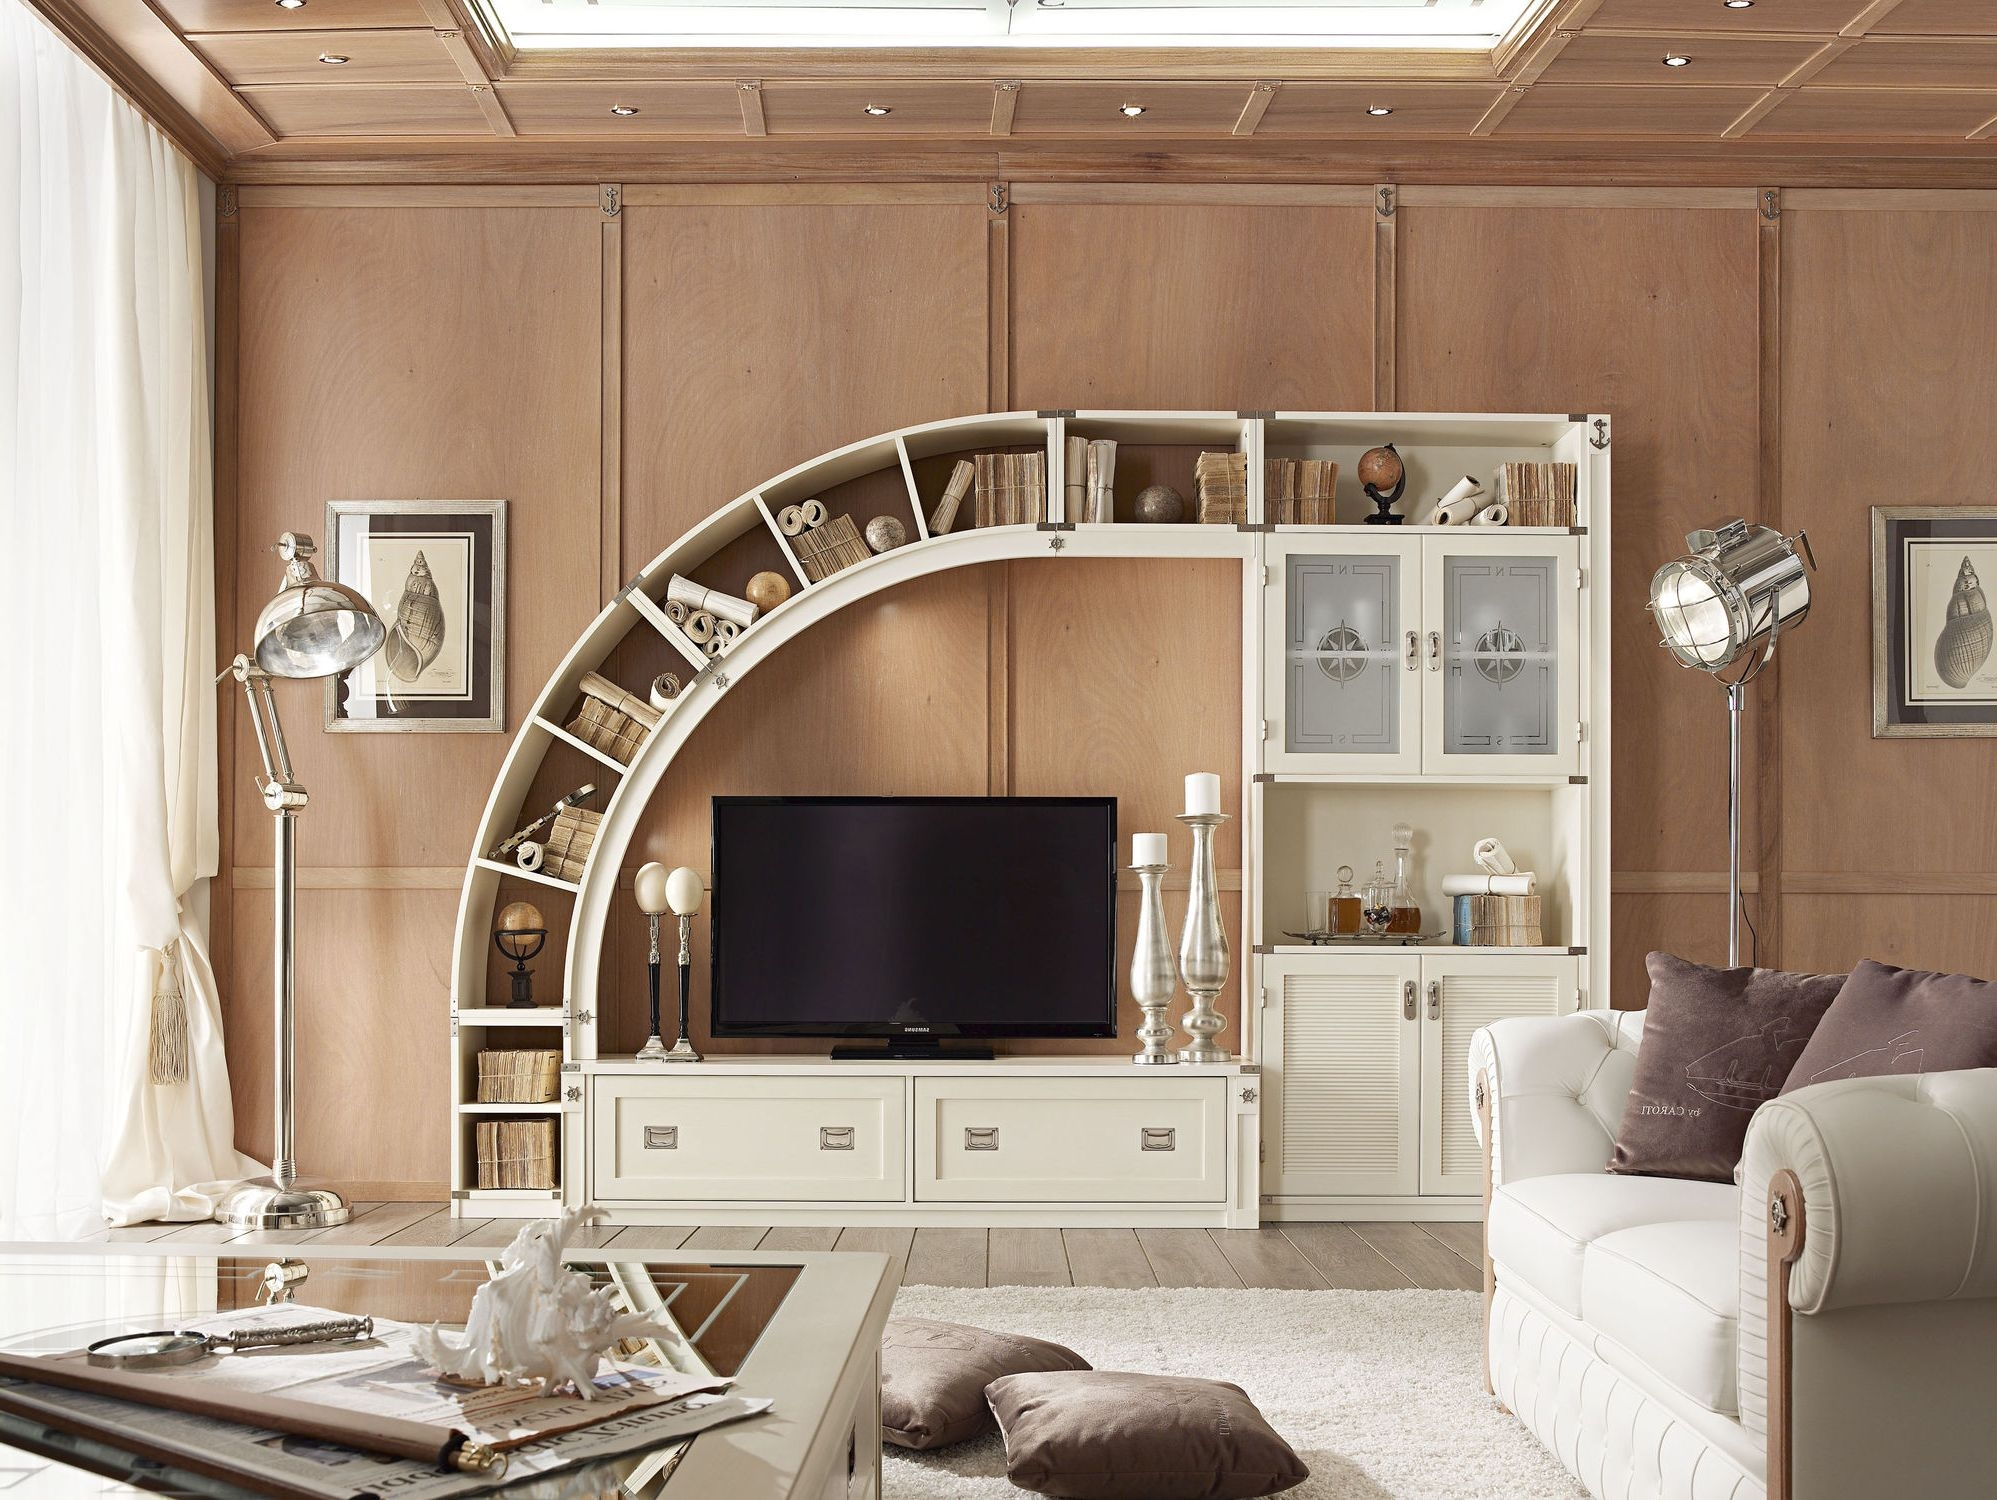 Stunning Modular Tv Stand With Cabinet And Curved Unique Bookcase Pertaining To Bookcase With Tv Space (View 14 of 15)